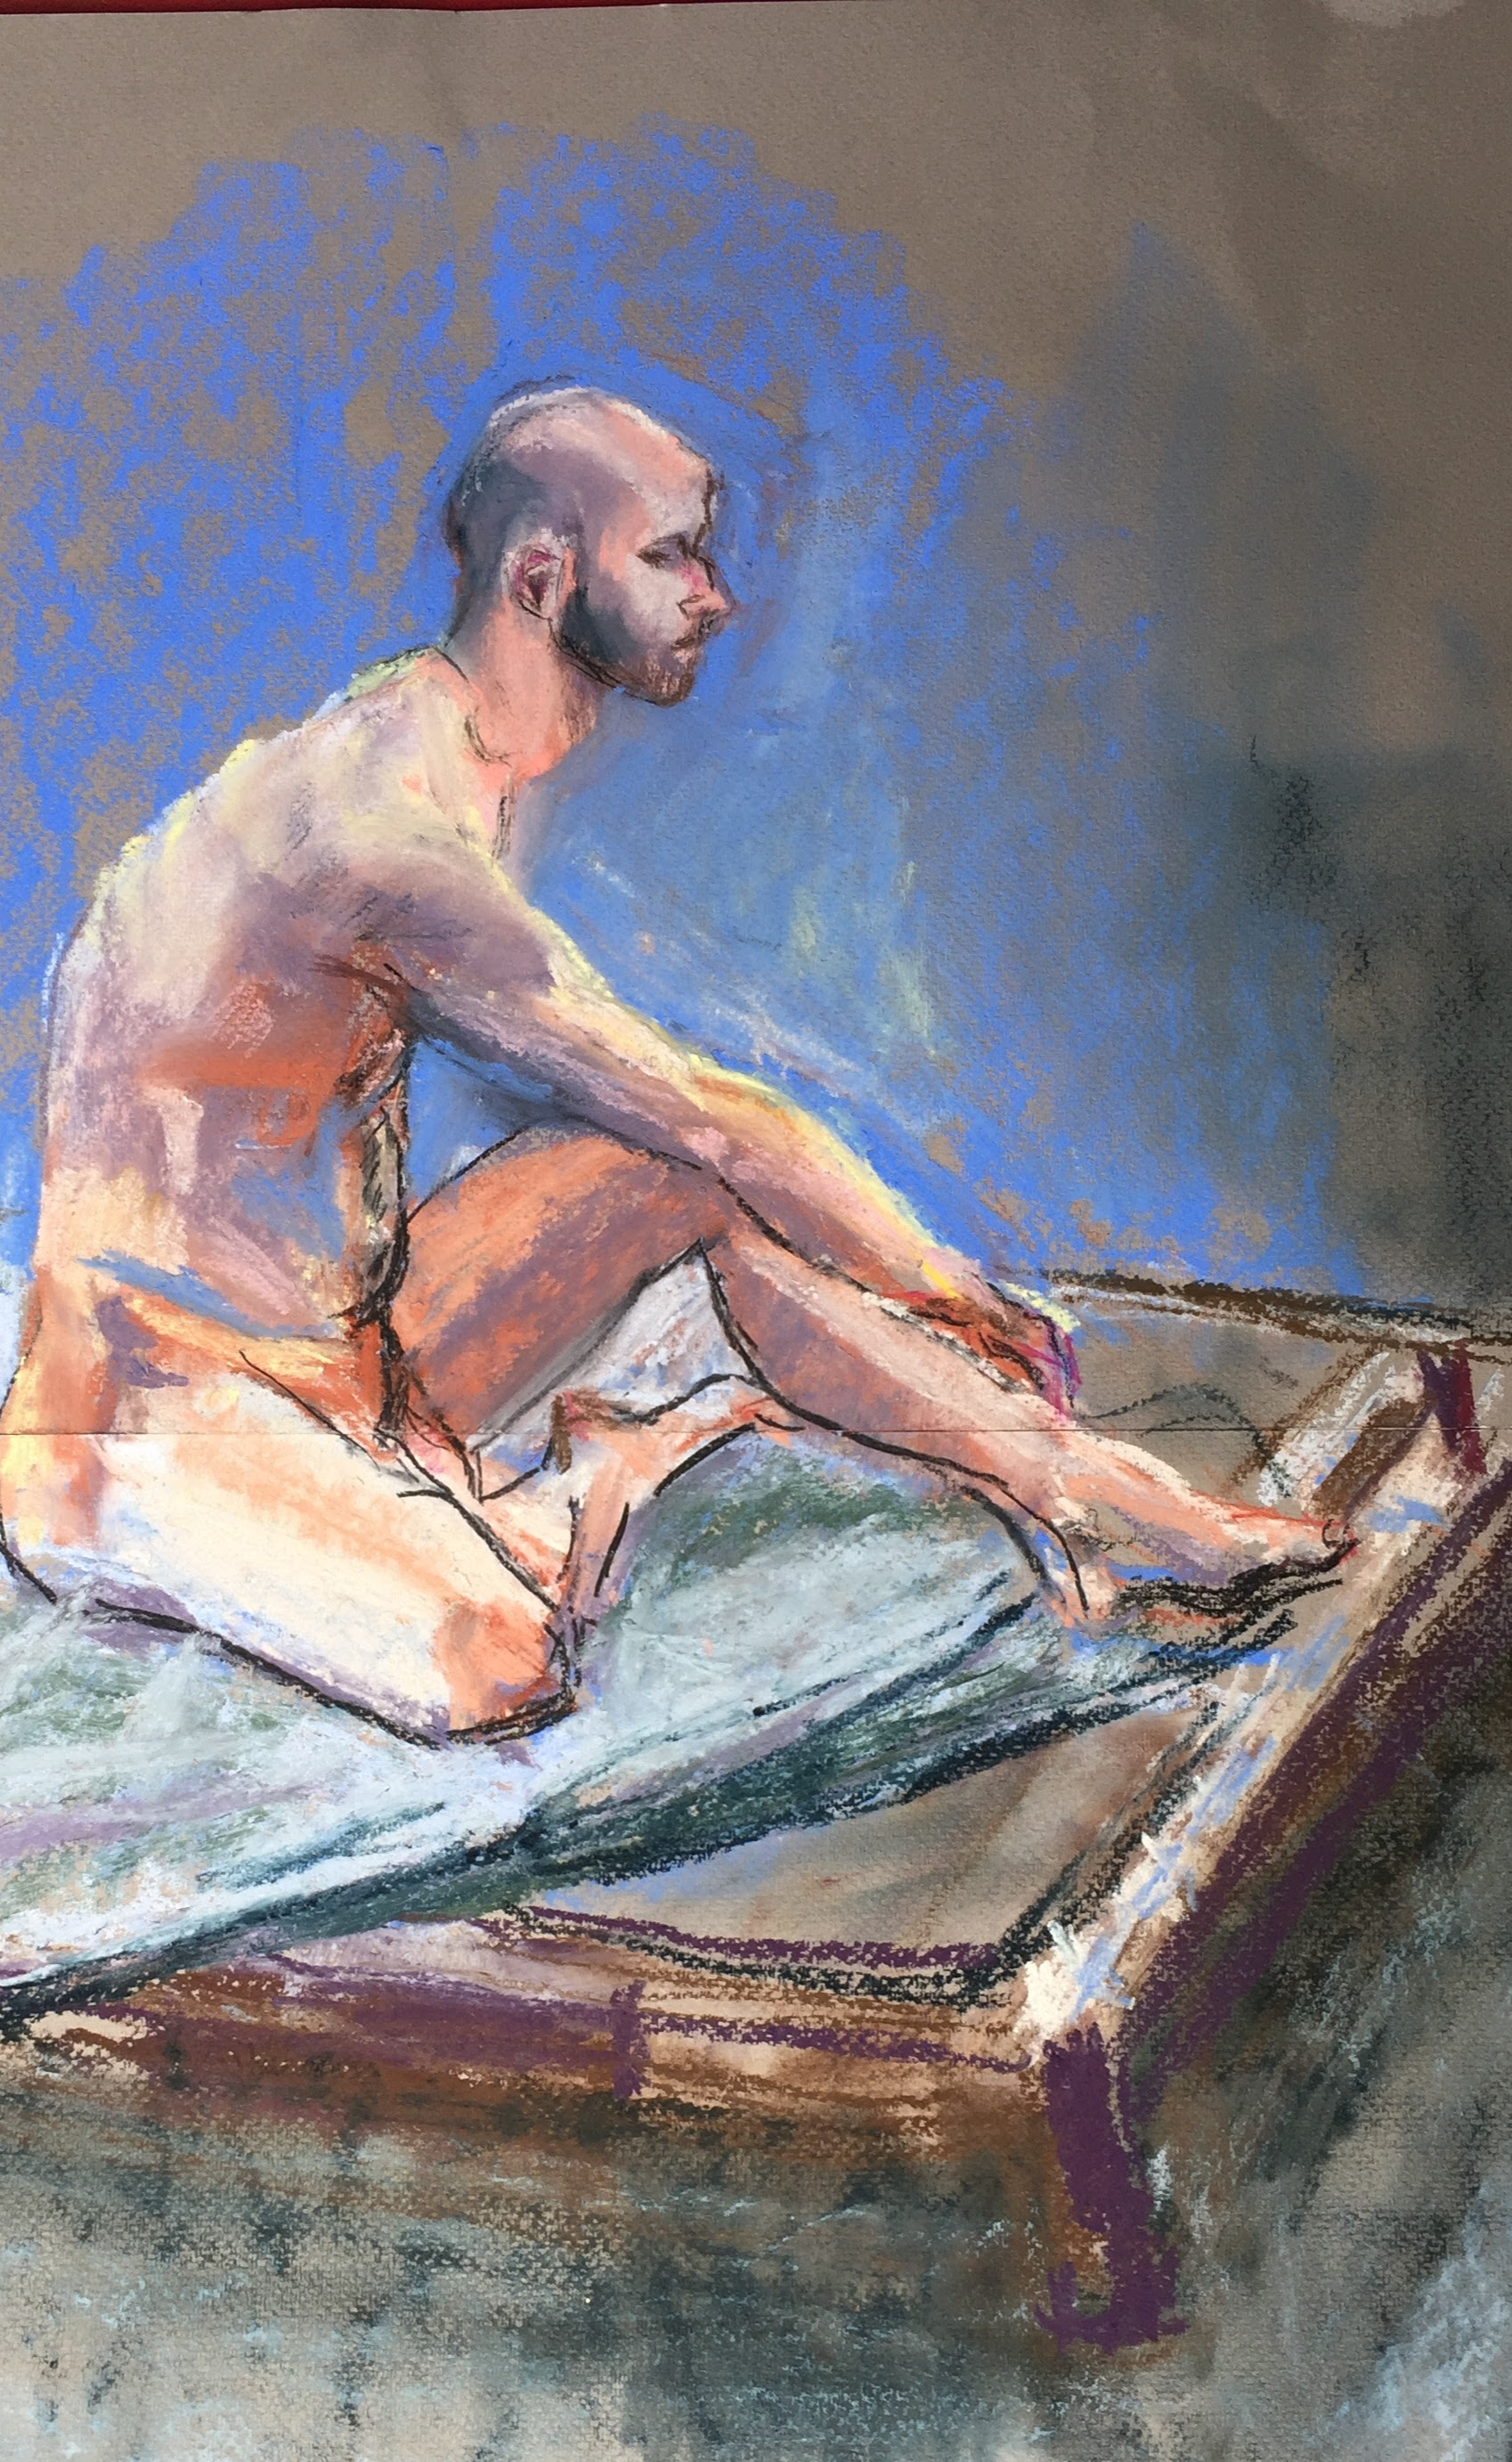 Dominic with Elongated Neck     Unison pastels on paper  by Sally Hyman